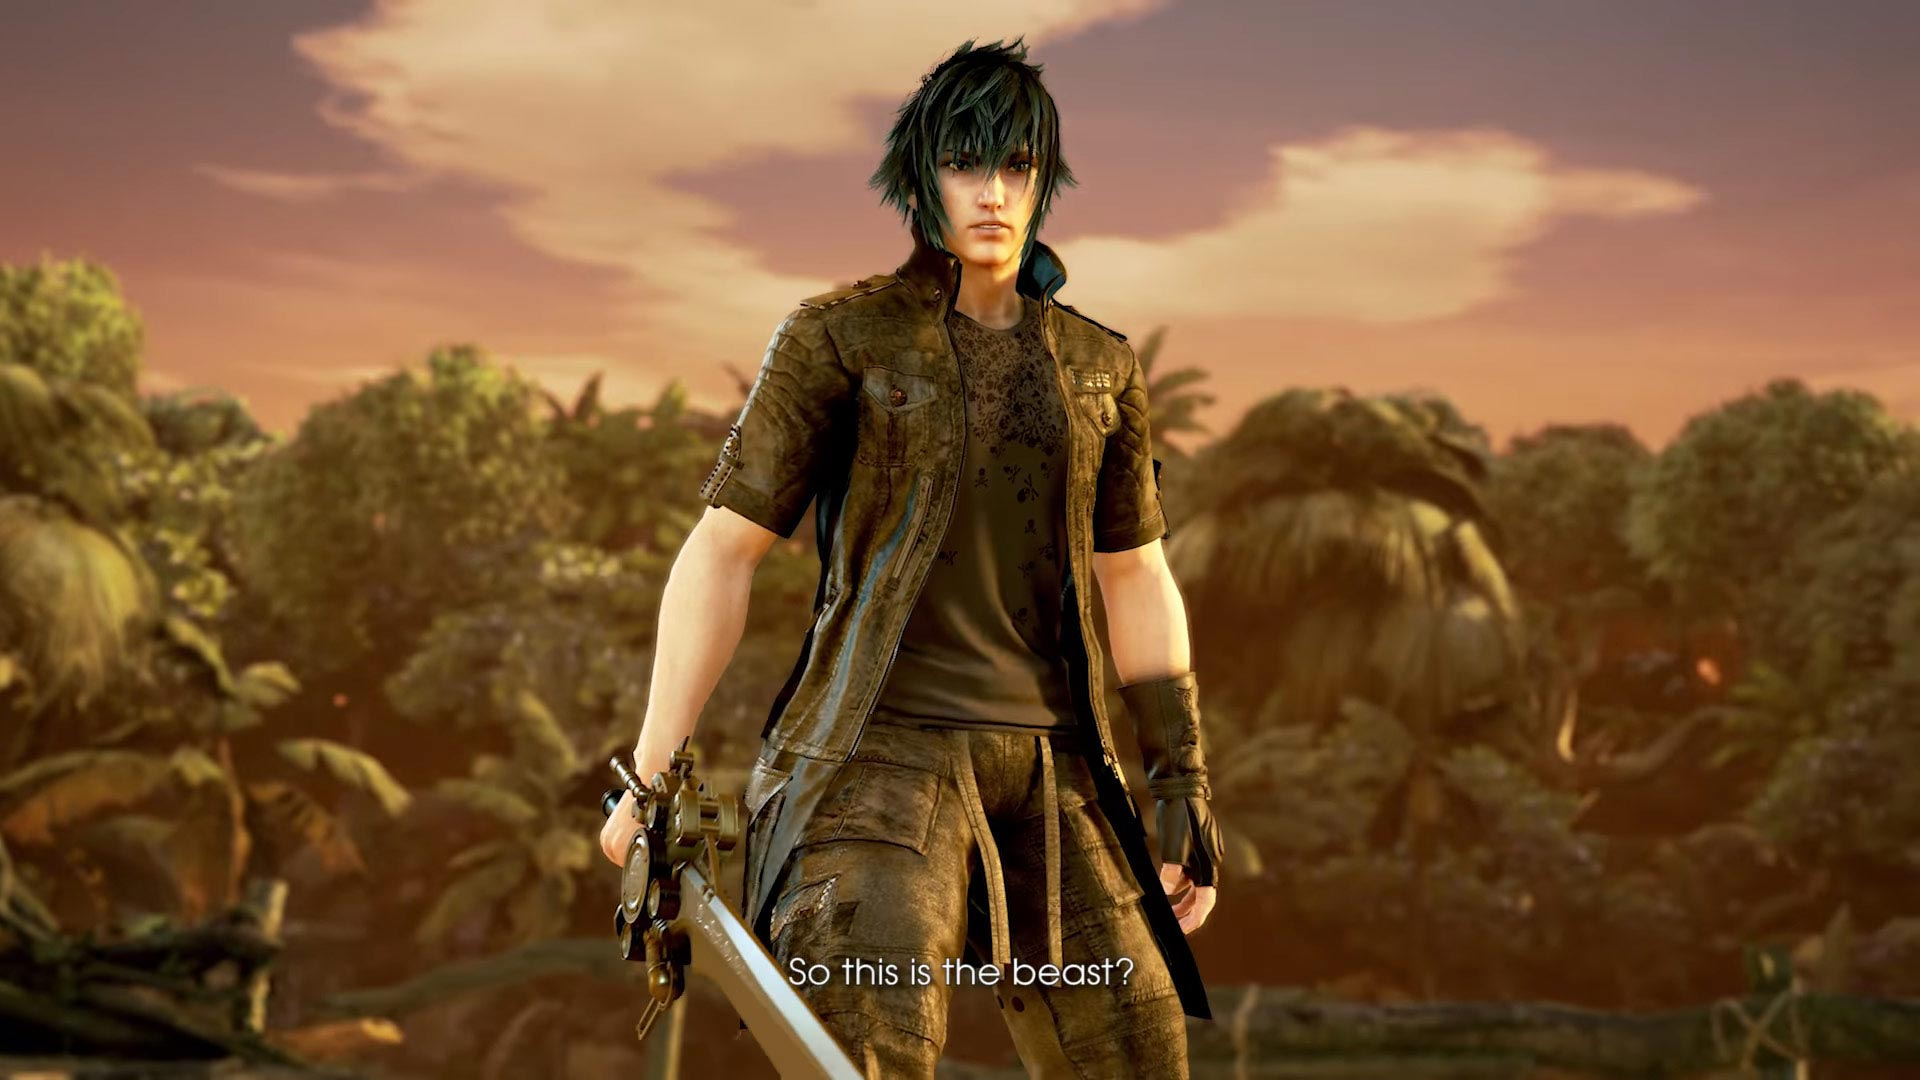 Tekken 7 Noctis Lucis Caelum Reveal Screenshots 5 out of 9 image gallery